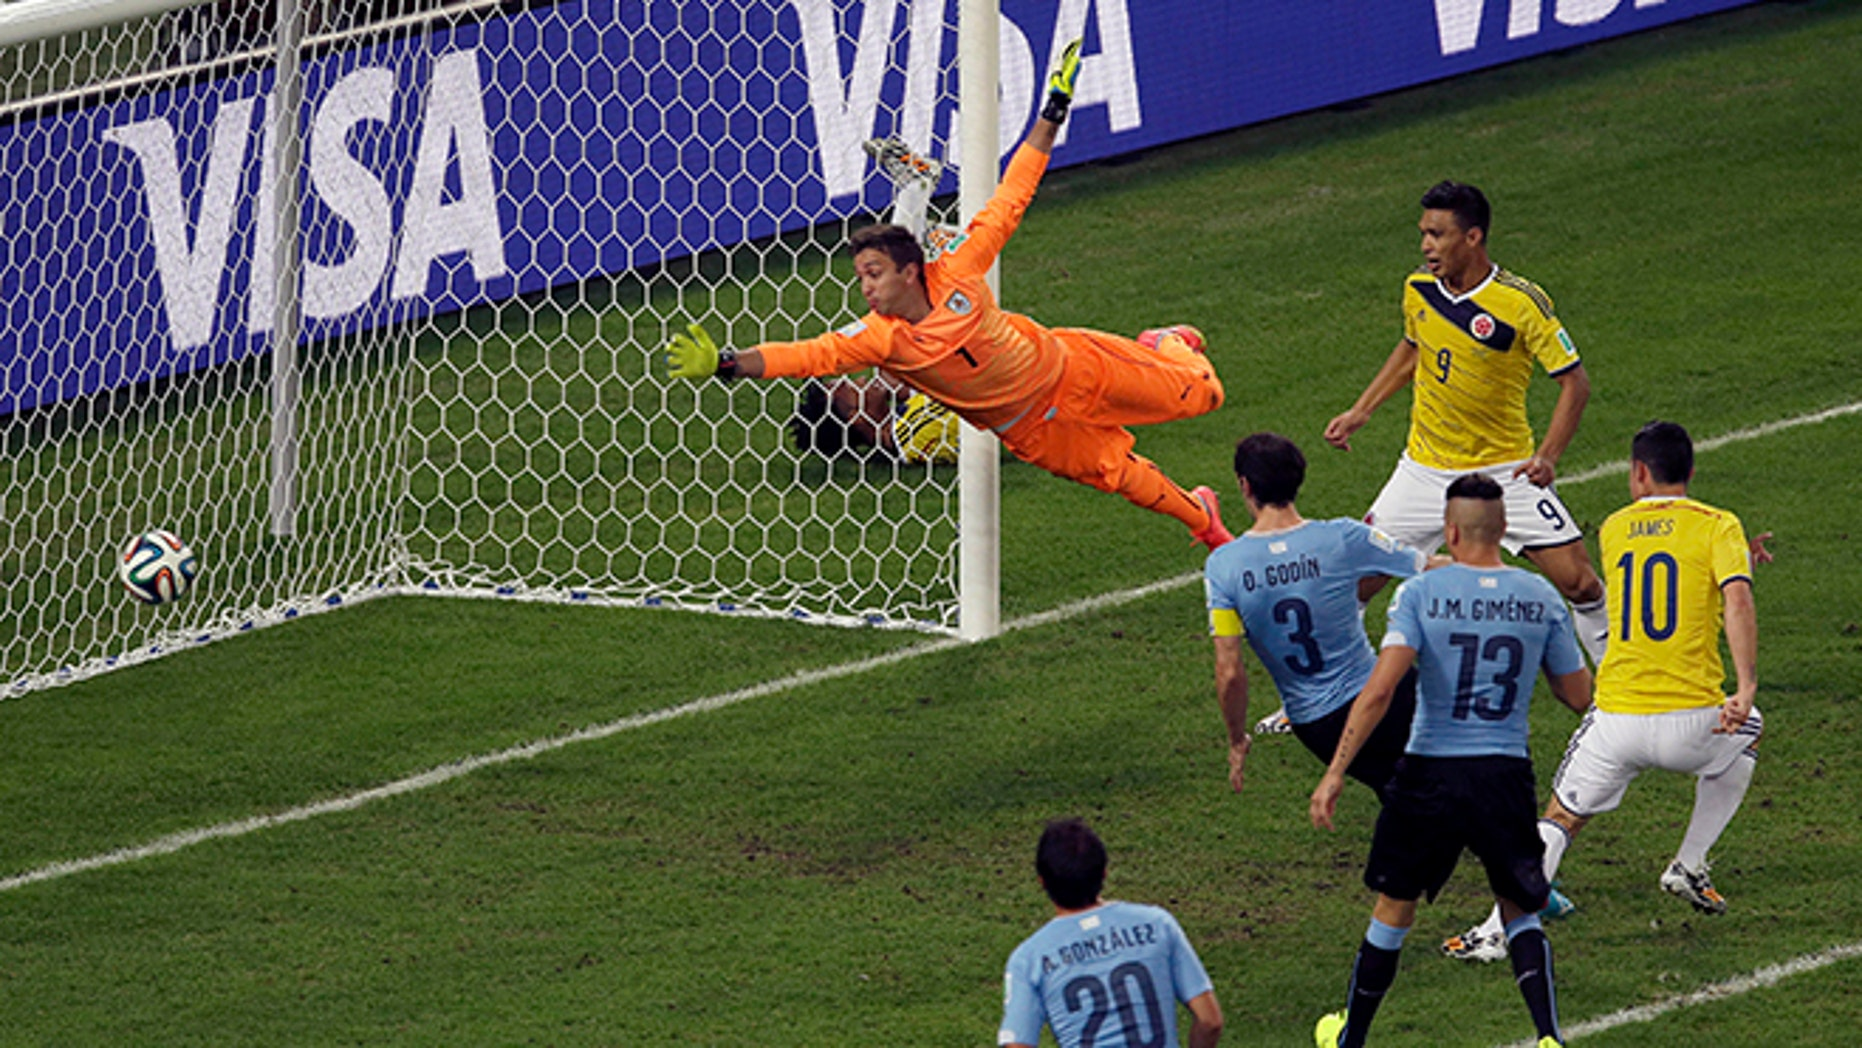 Colombia's James Rodriguez, right, scores his side's second goal past Uruguay's goalkeeper Fernando Muslera during the World Cup round of 16 soccer match between Colombia and Uruguay at the Maracana Stadium in Rio de Janeiro, Brazil, Saturday, June 28, 2014. (AP Photo/Themba Hadebe)